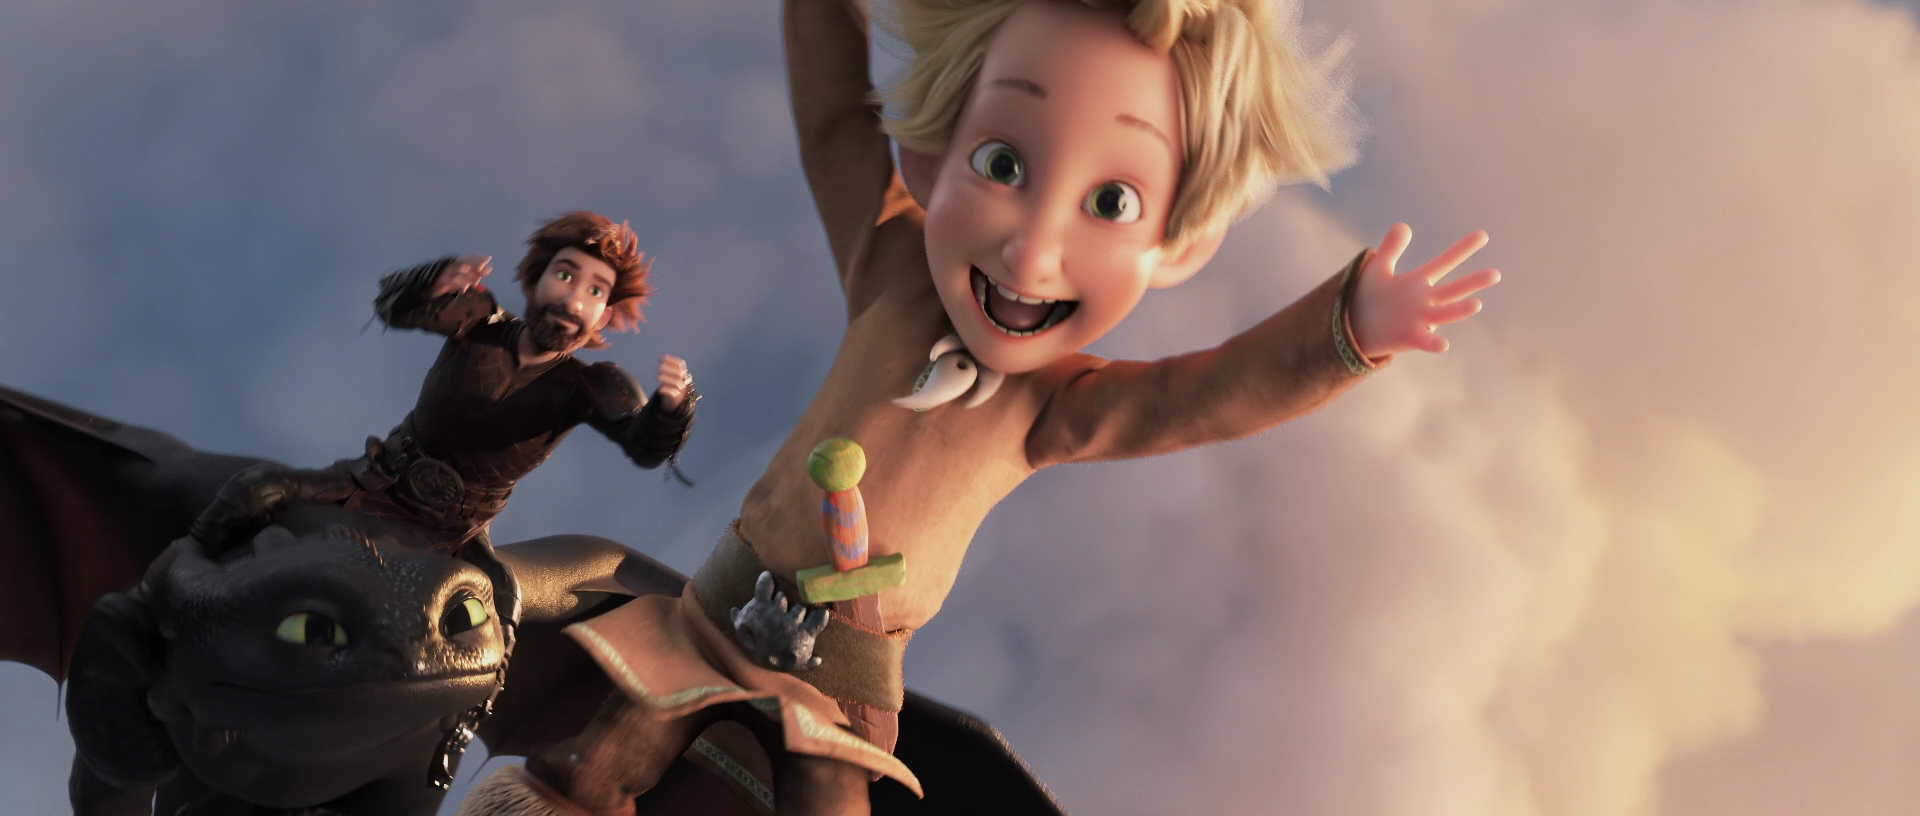 How to Train Your Dragon: The Hidden World / Video Examples - TV